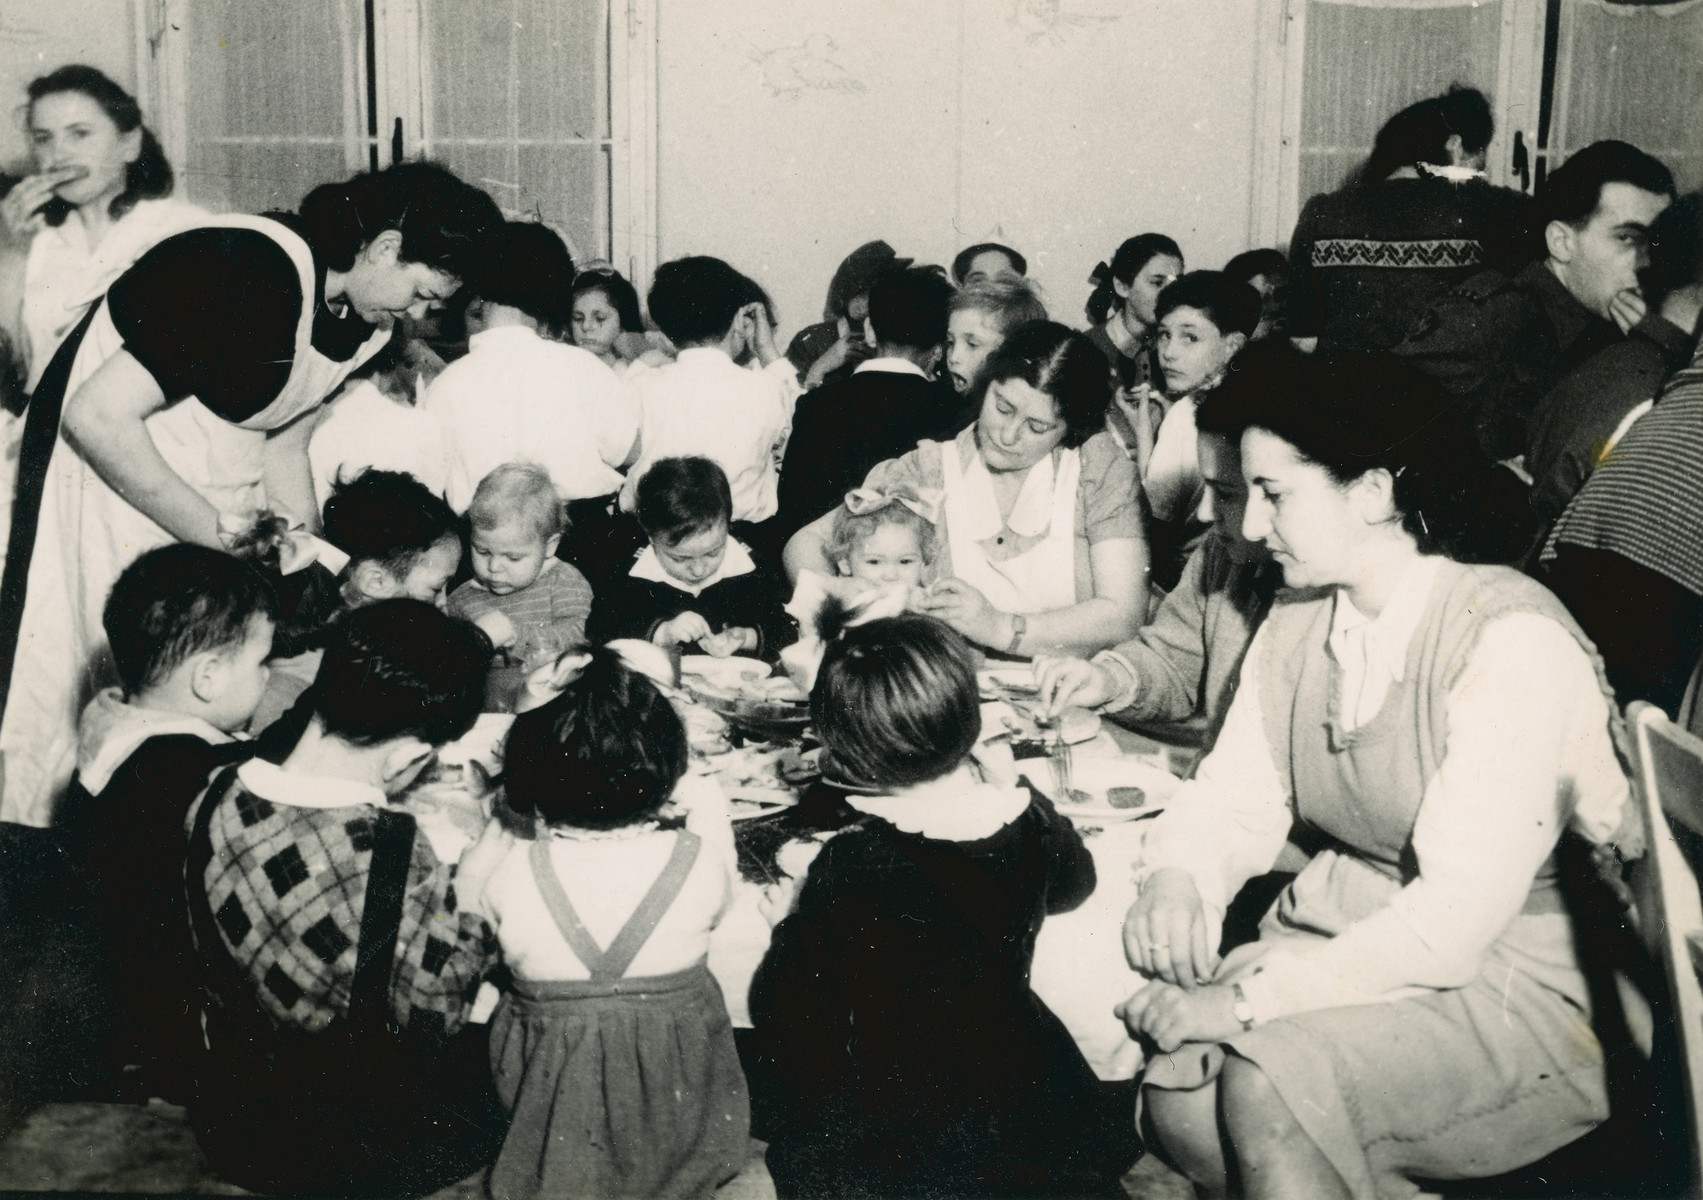 Female aid workers feed young children in the Bergen Belsen displaced persons camp.  Pictured are Elana Millman (the blond baby in the center wearing a sweater) and Zippy Orlin, the aid worker sitting in front.